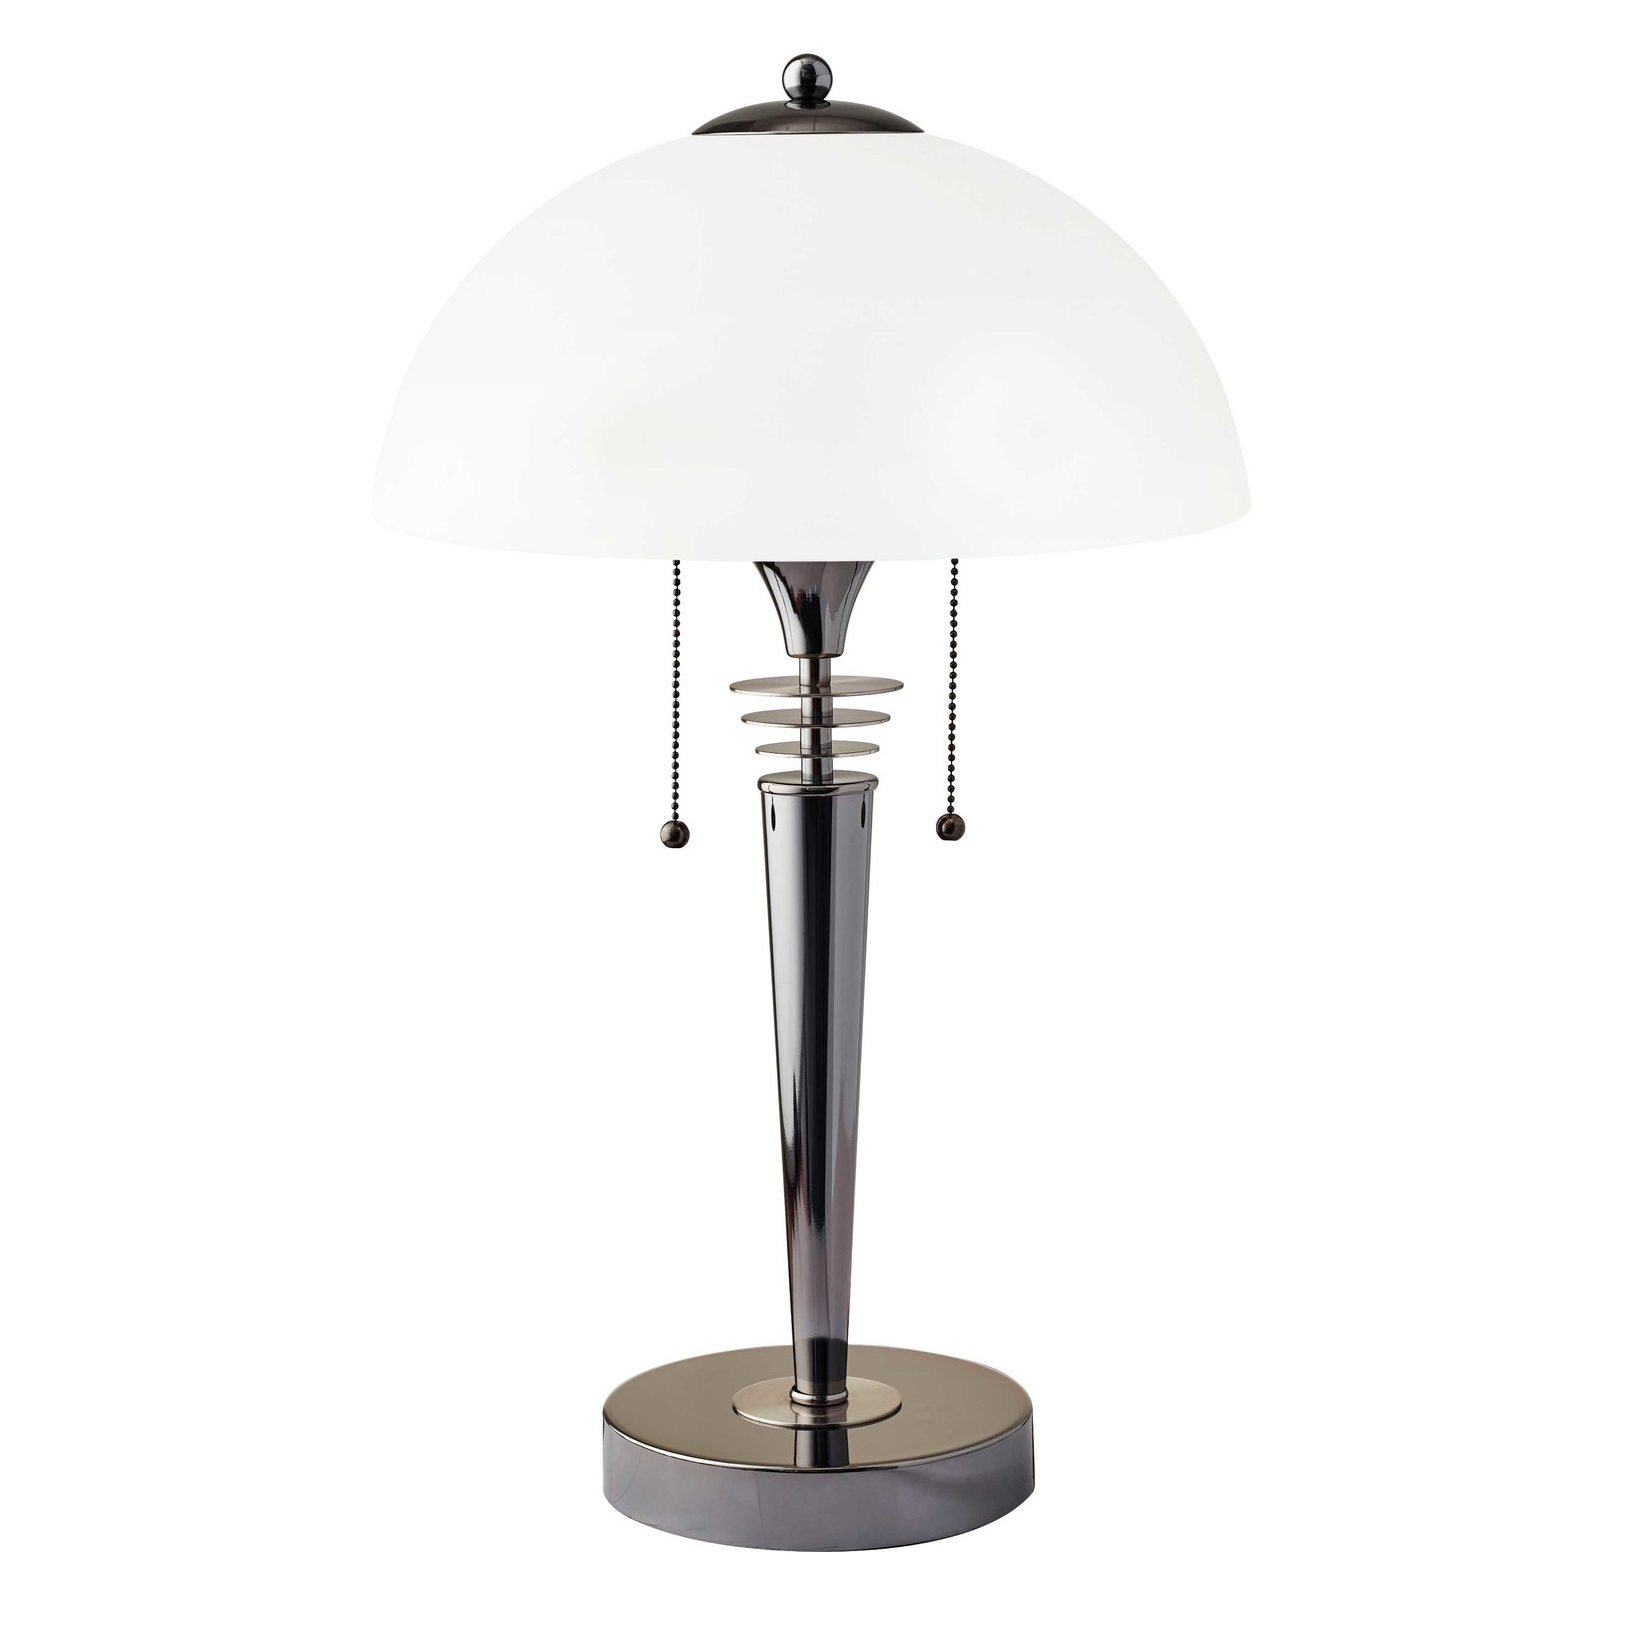 Adesso Metropolis Table Lamp With Bowl Shade In Black